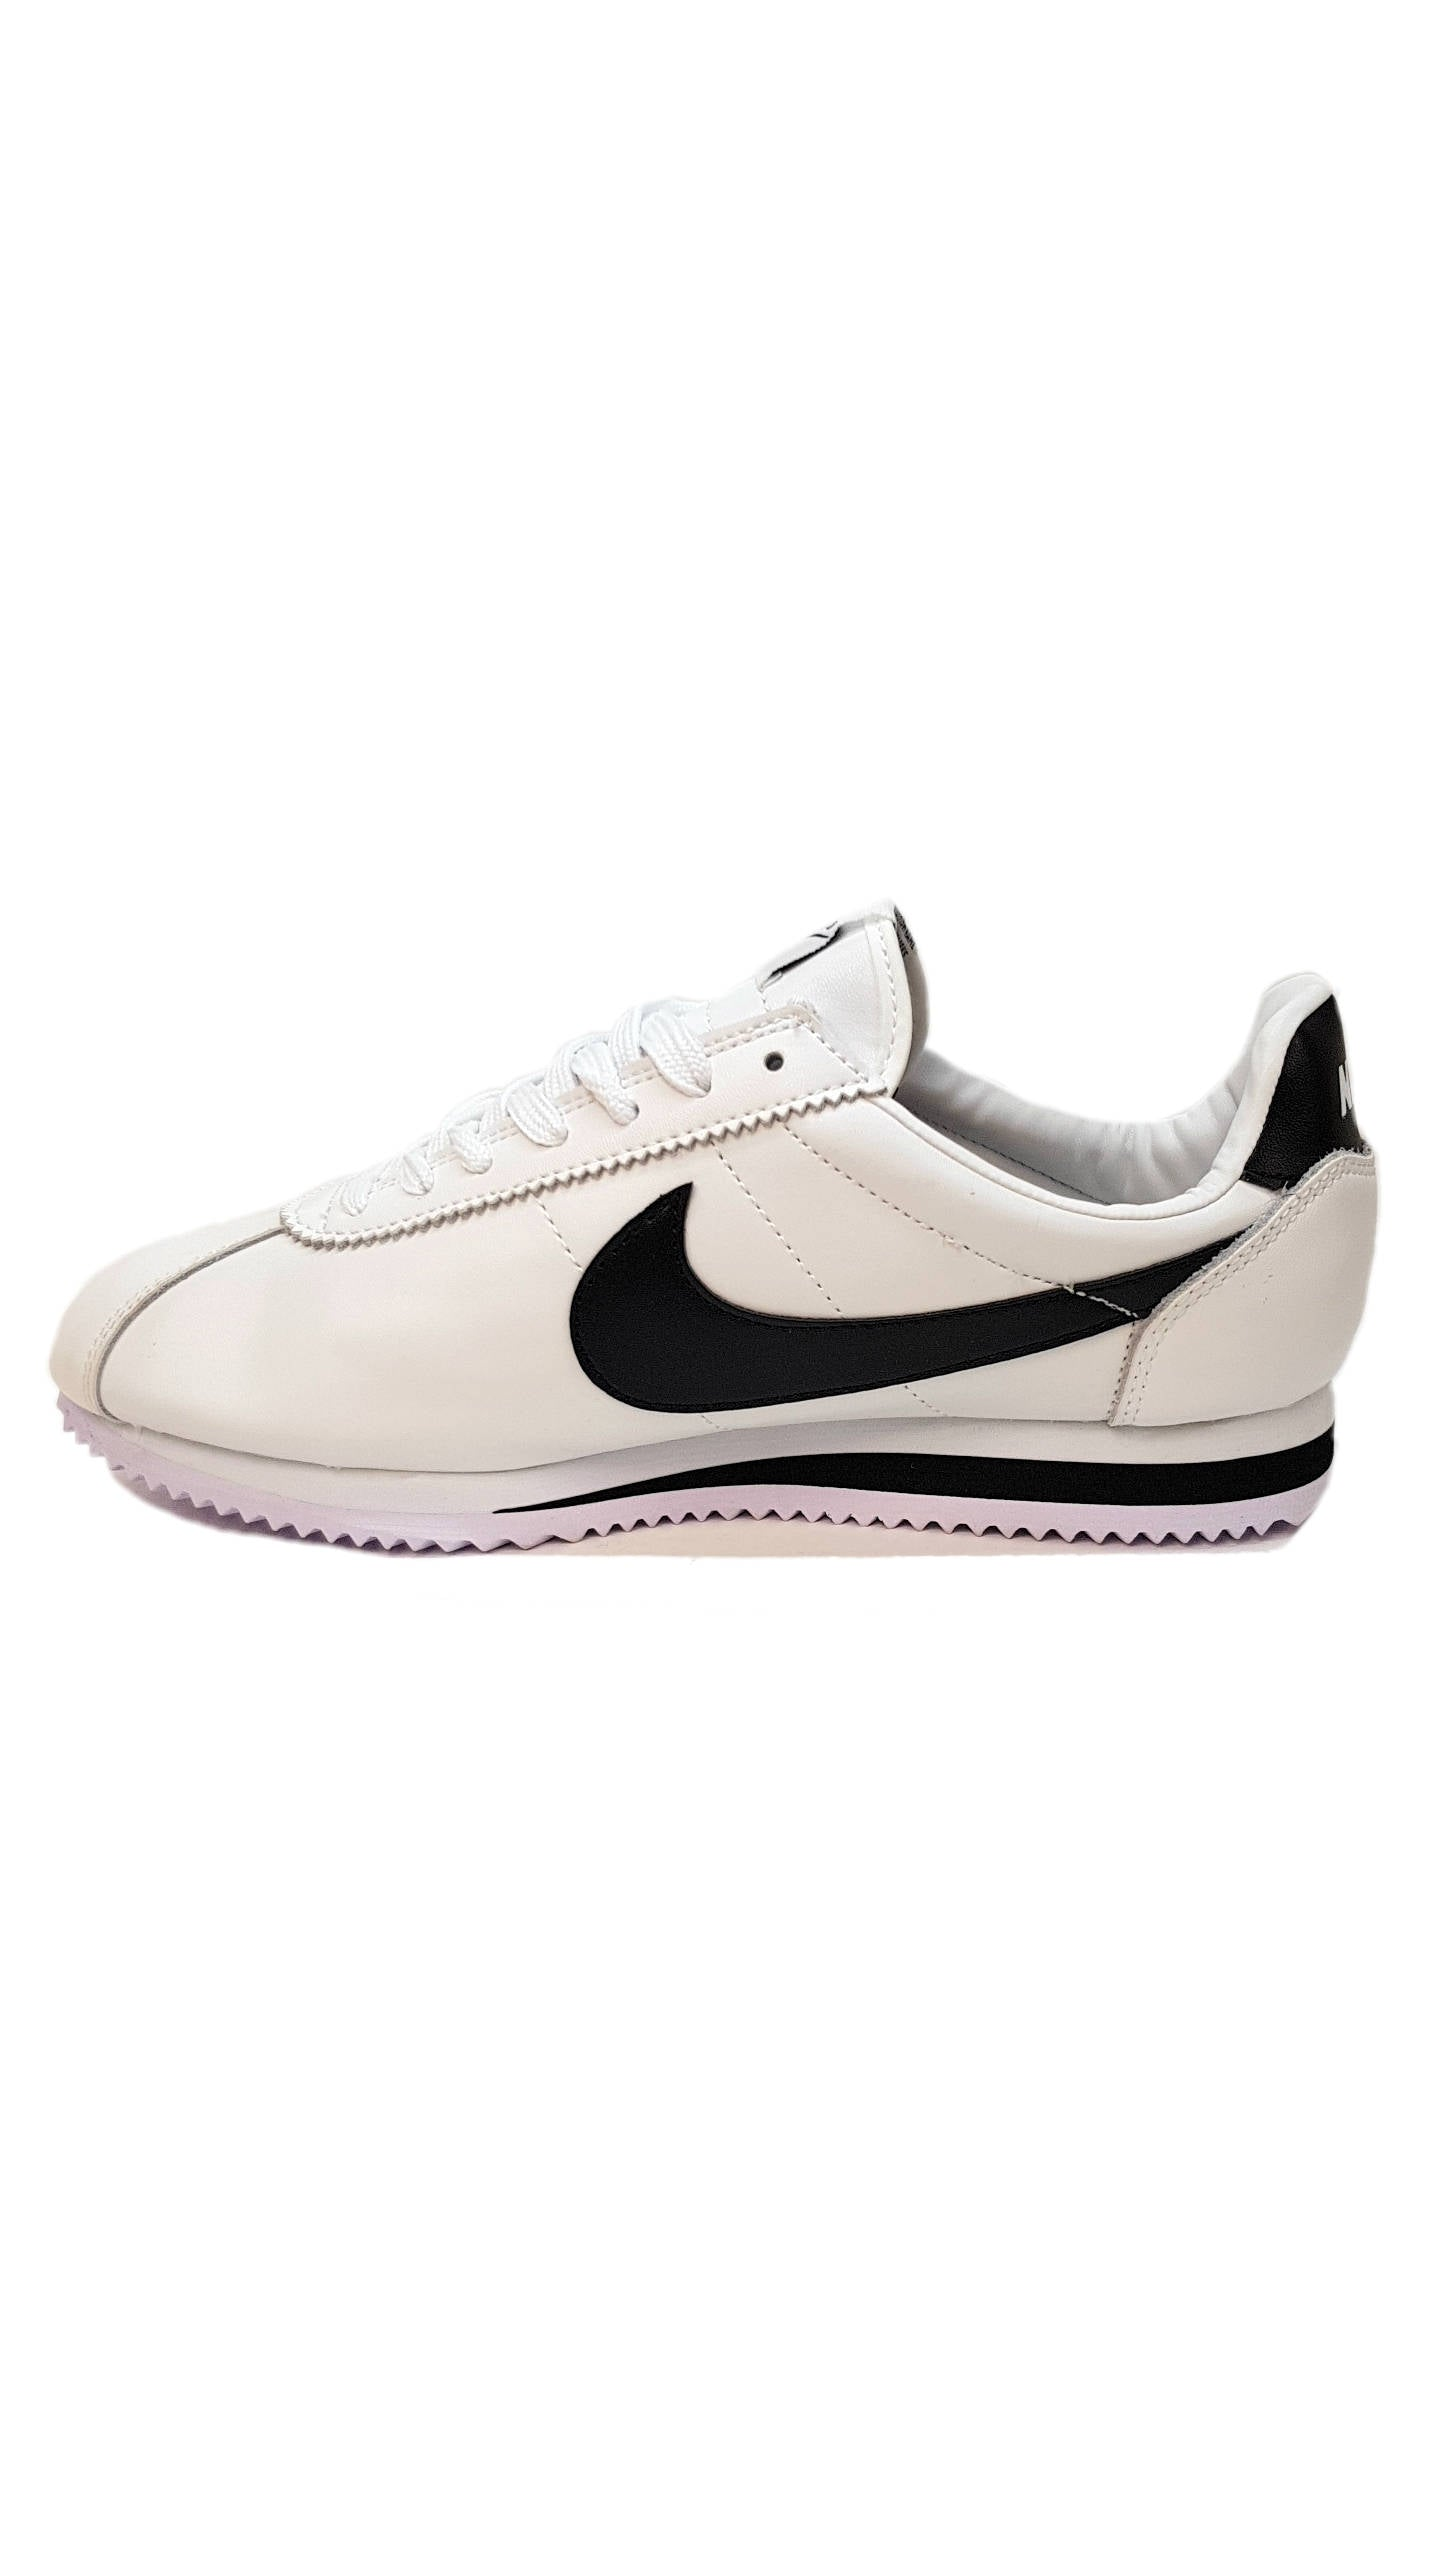 Cortez Premium Leather - White/Black